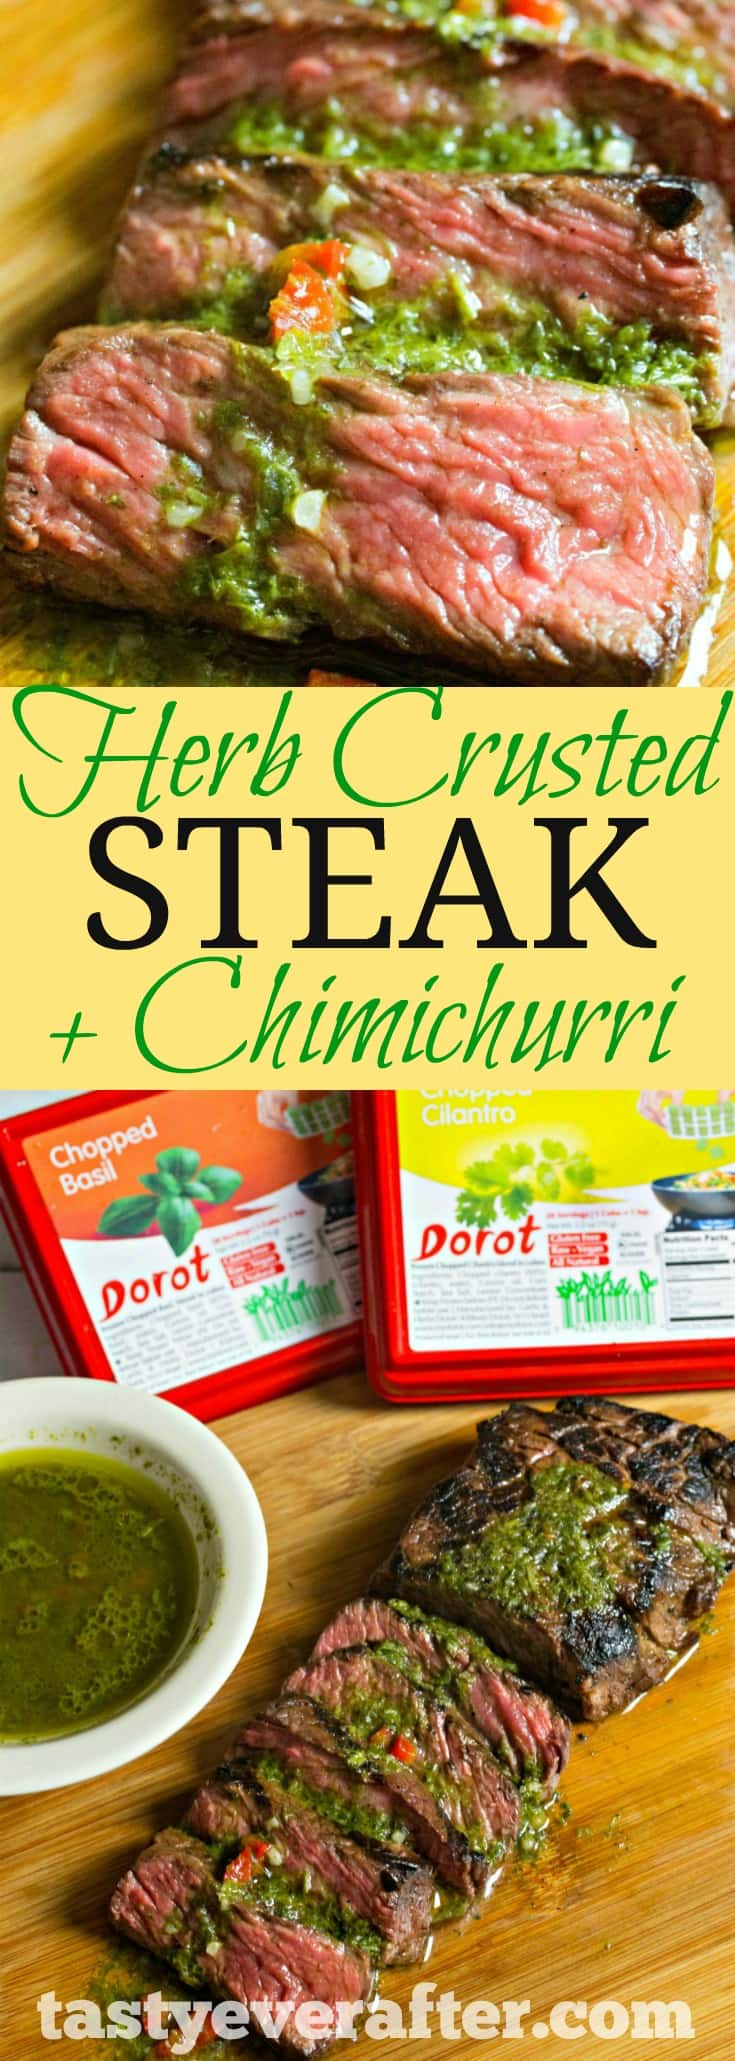 asy Herb Crusted Steak + Chimichurri with Dorot Recipe